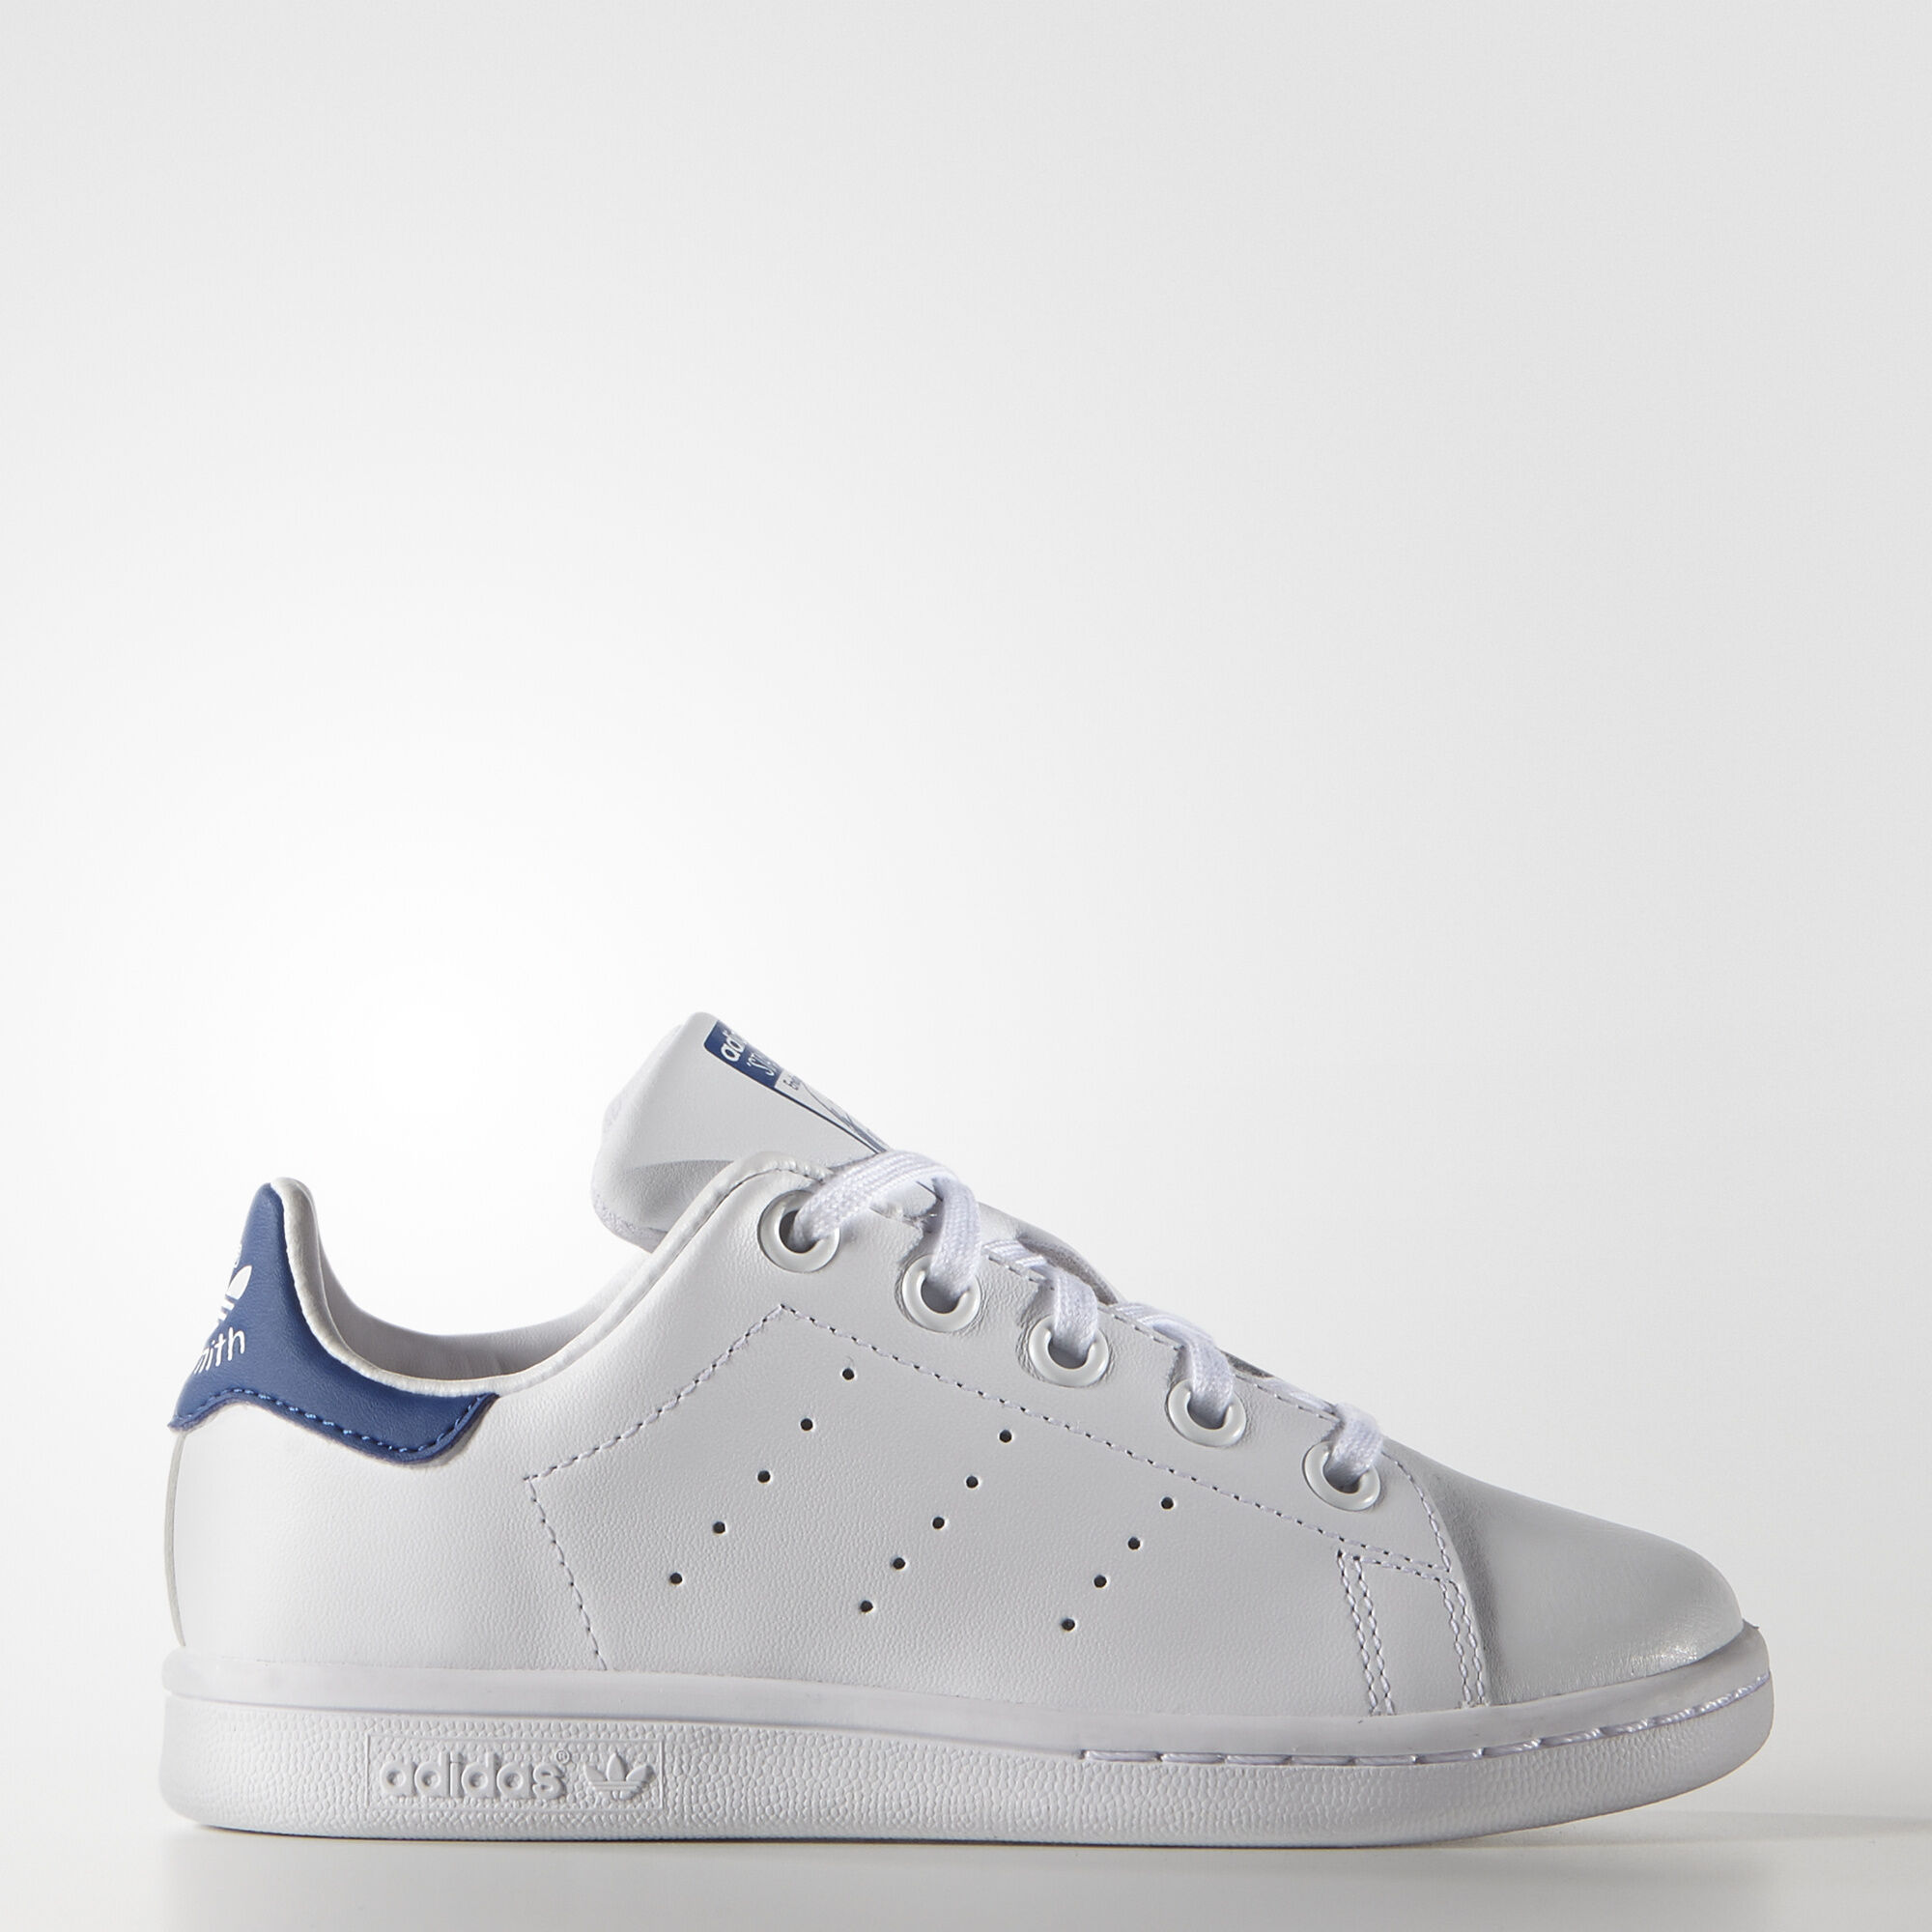 stan smith adidas shoes